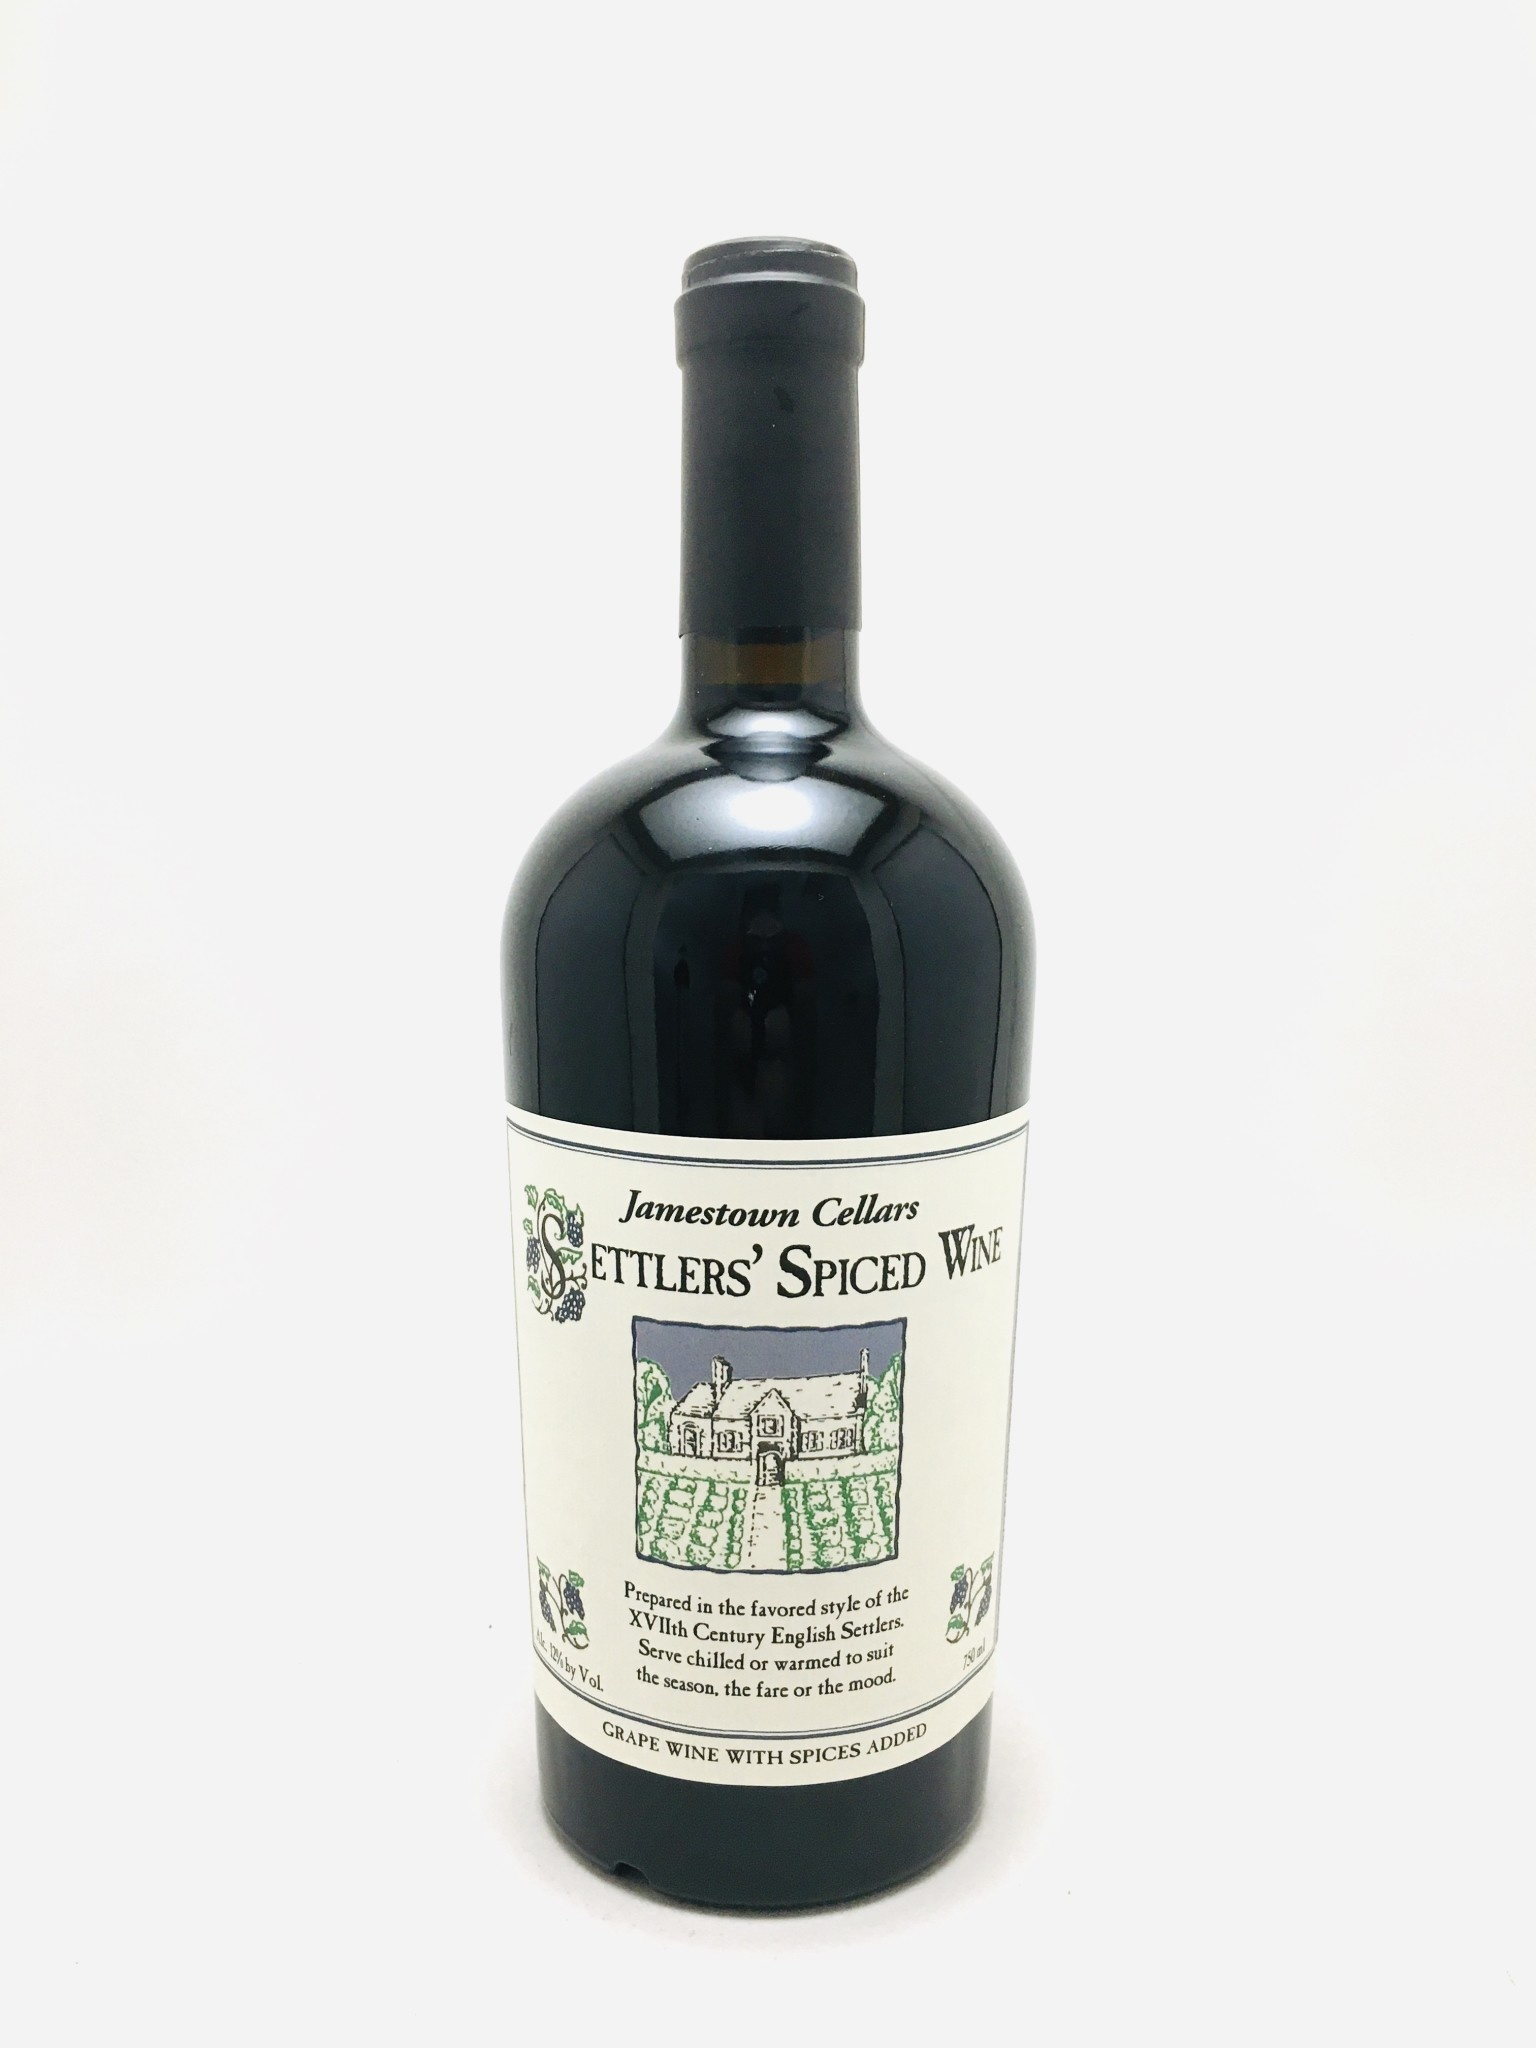 The Williamsburg Winery, Jamestown Cellars Settlers' Spiced Wine